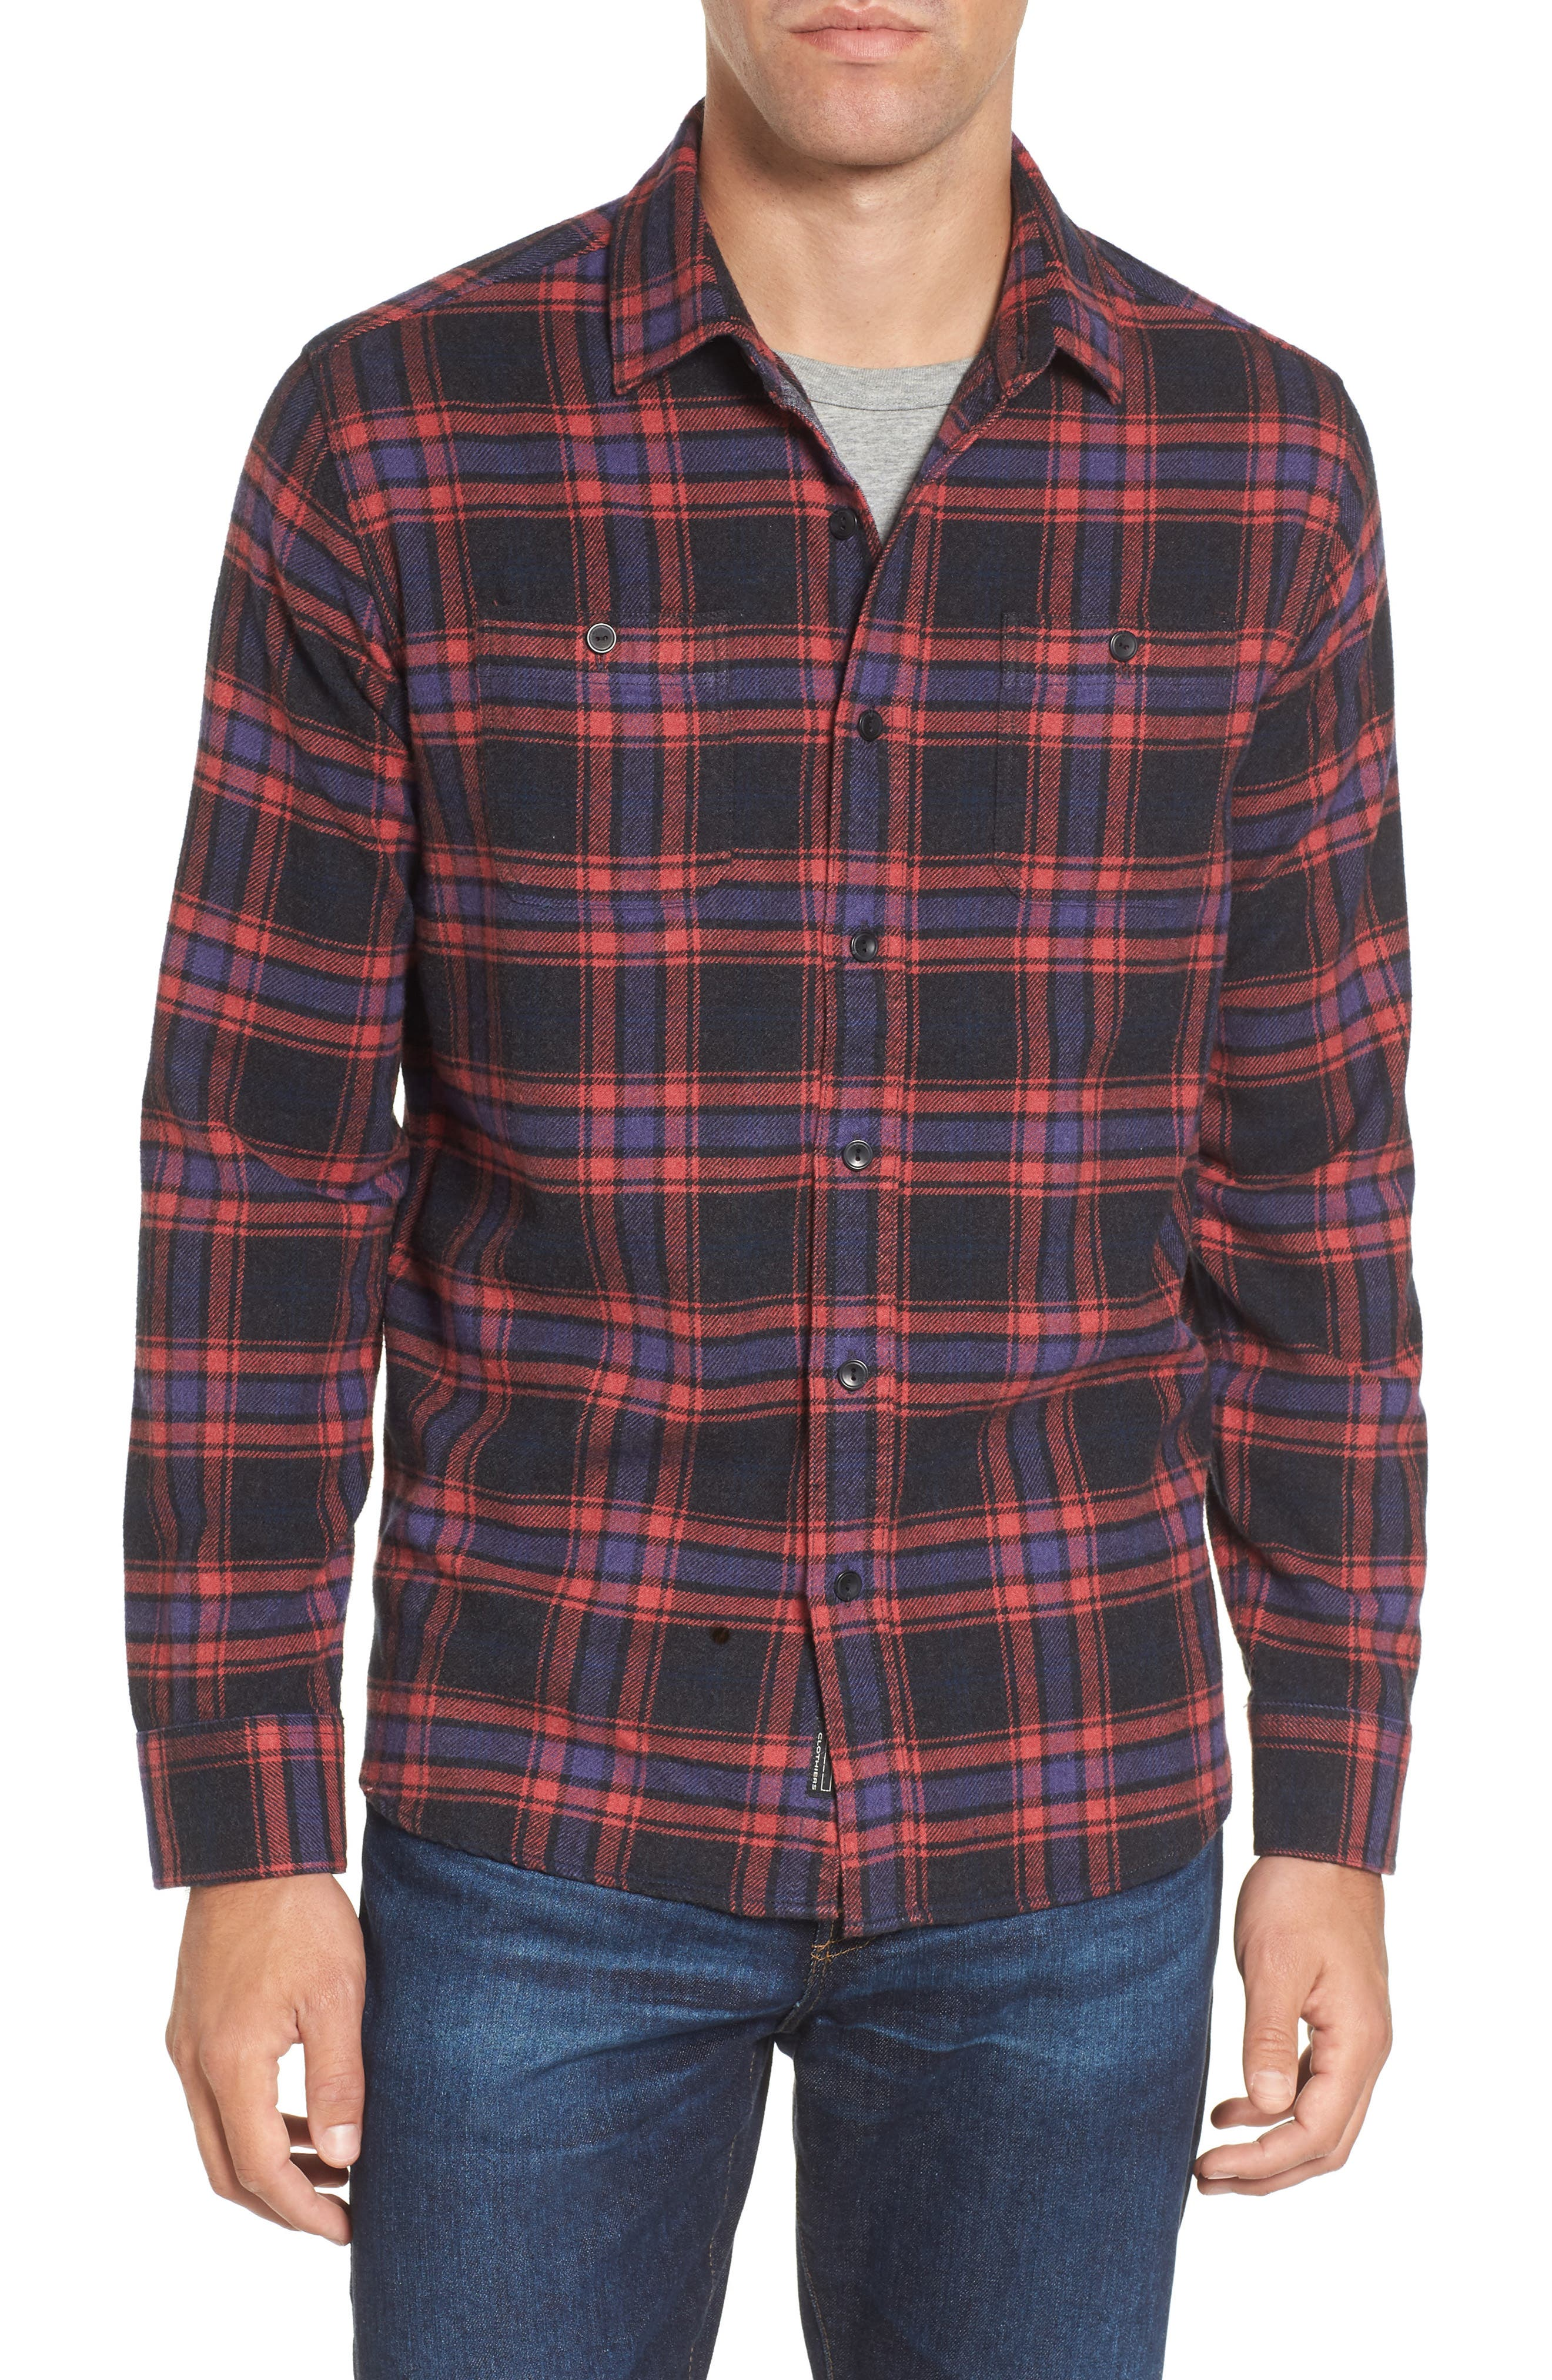 Chaucer Heritage Flannel Shirt,                         Main,                         color,